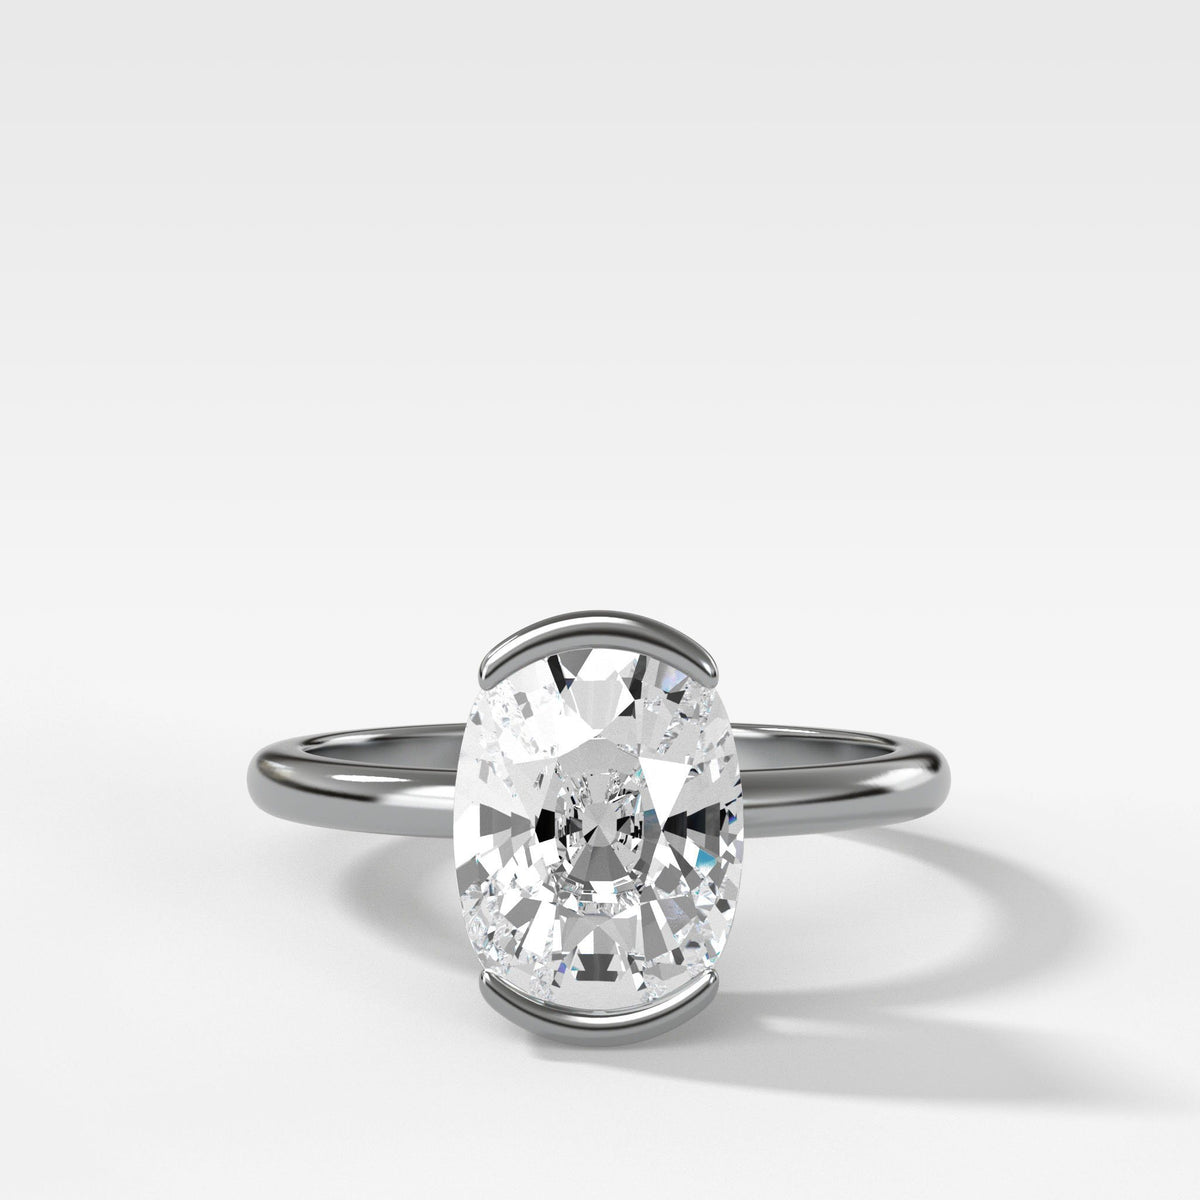 North South Half Bezel Solitaire Engagement Ring With Elongated Cushion Cut in White Gold by Good Stone